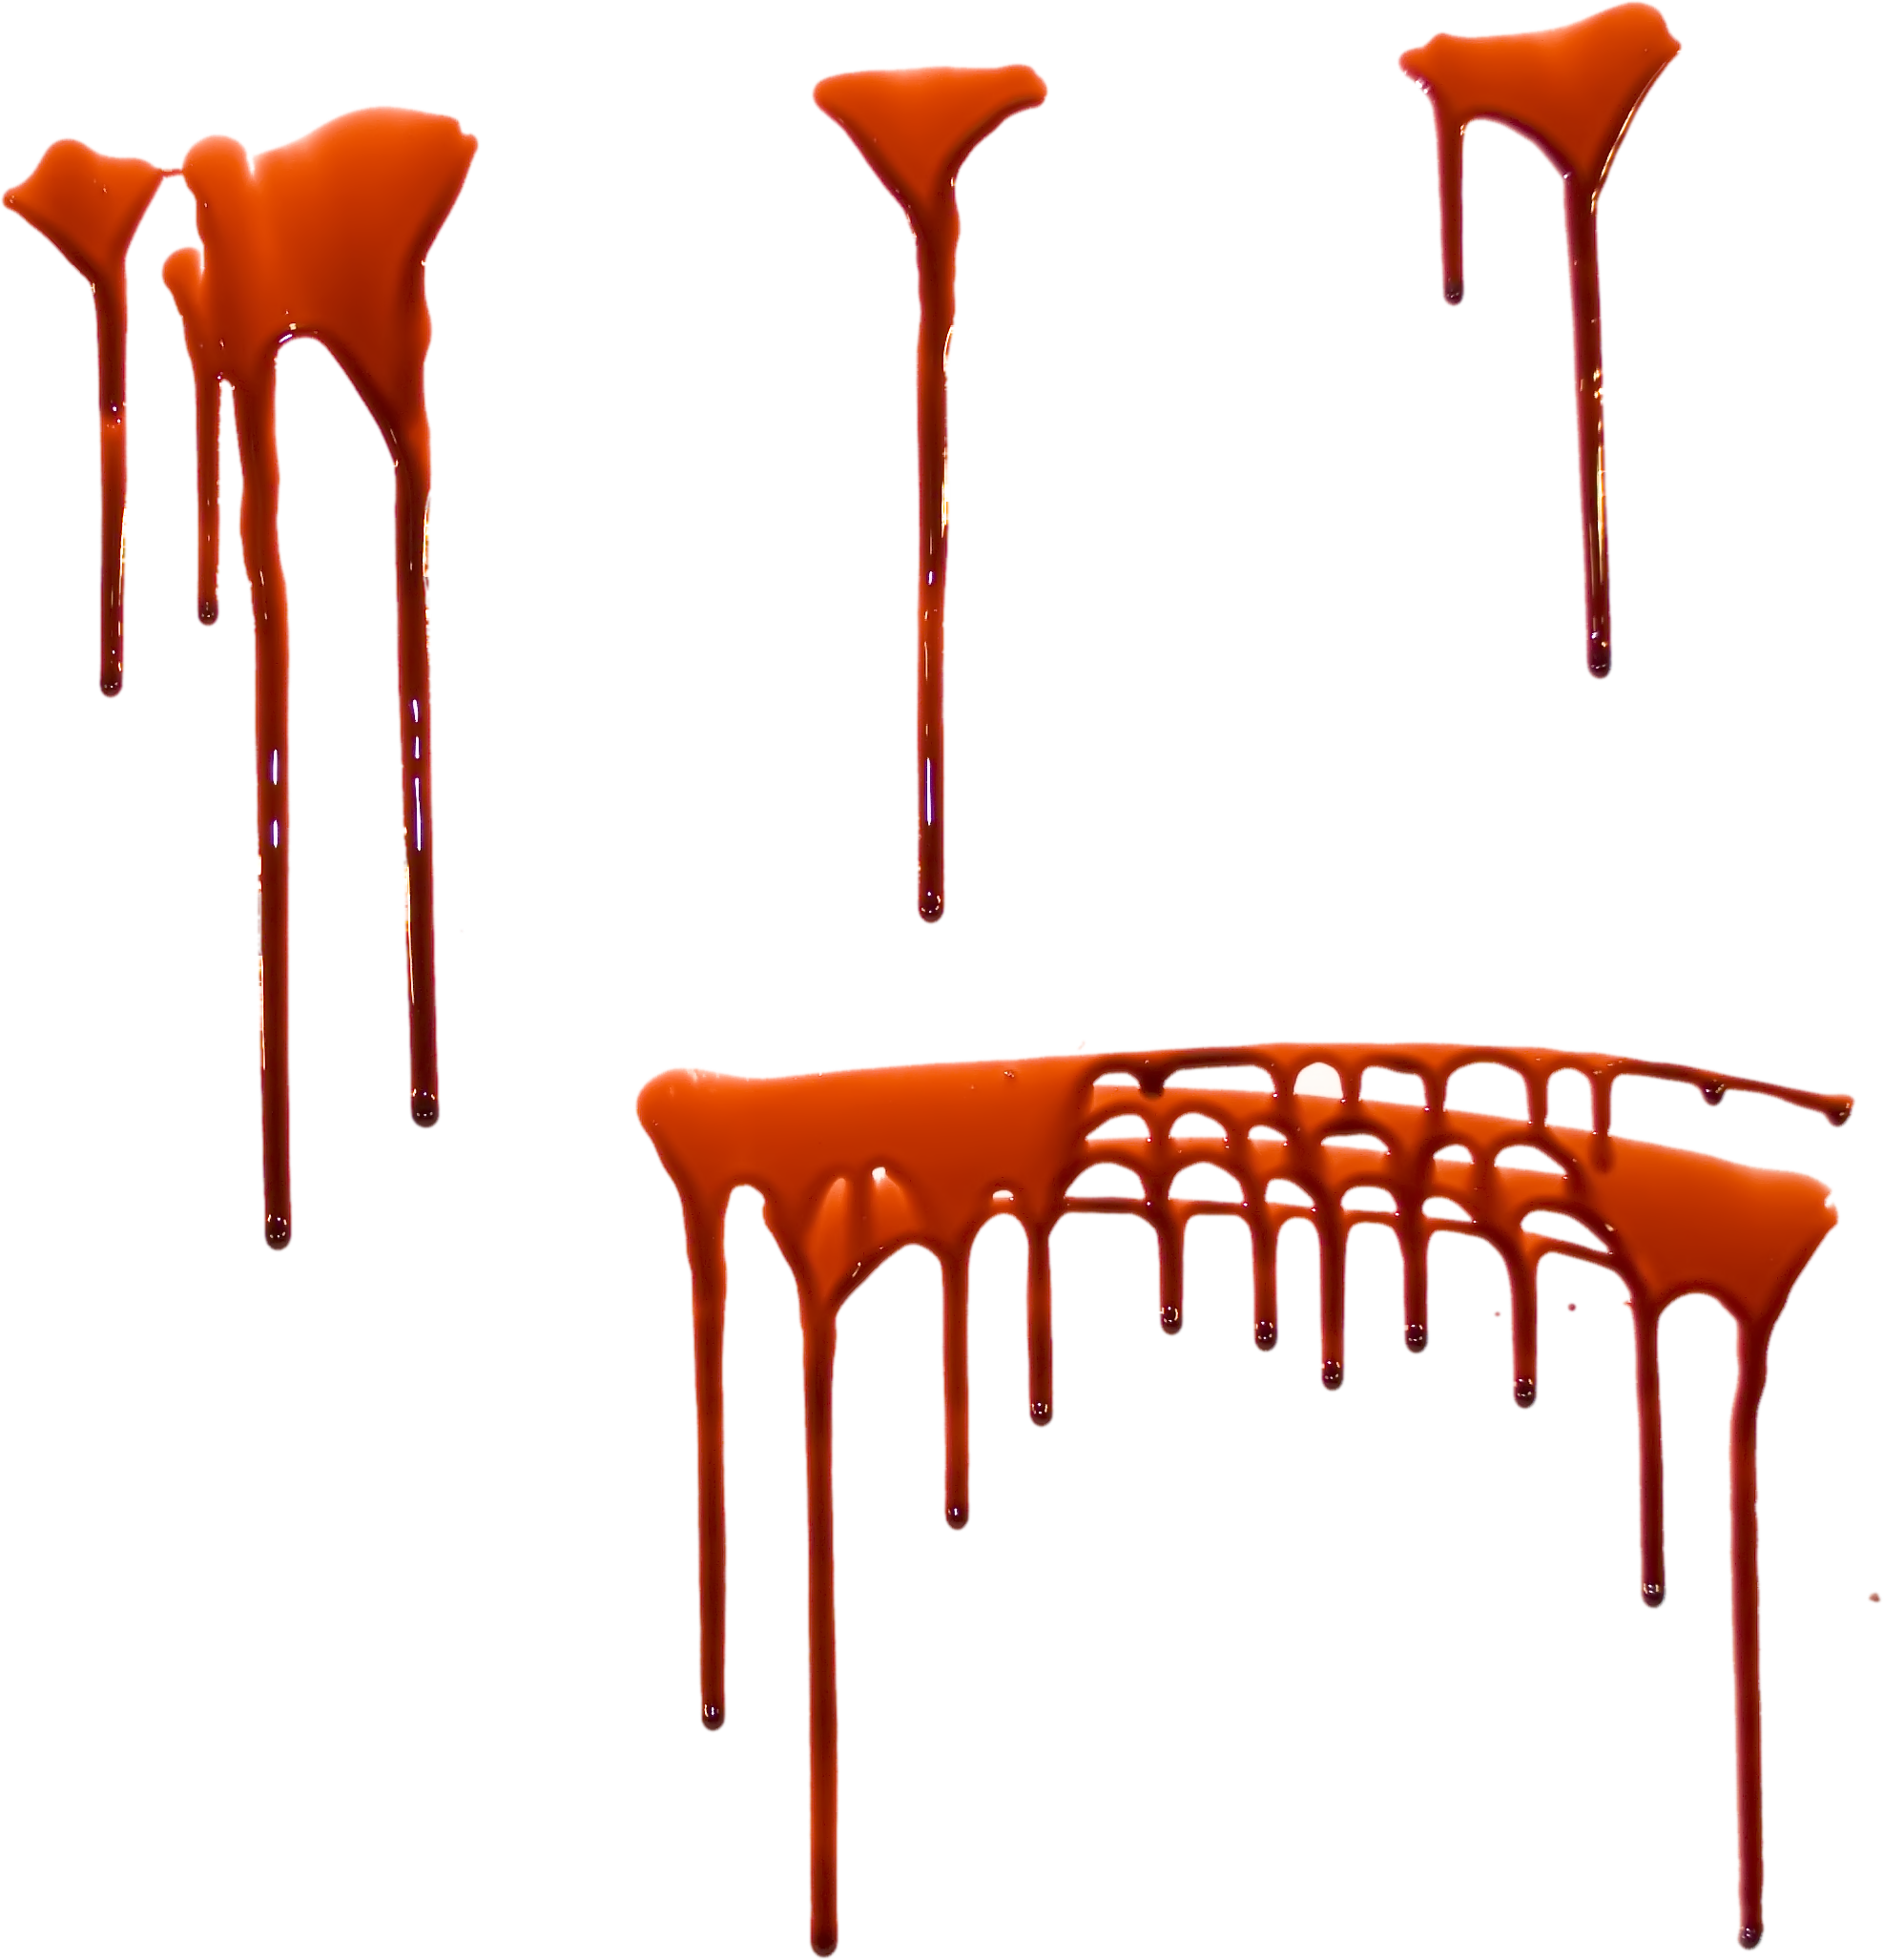 Drip Texture Png Blood Dripping Png Transparent Full Size Png Download Seekpng You can use these horror textures to create grunge blood. drip texture png blood dripping png